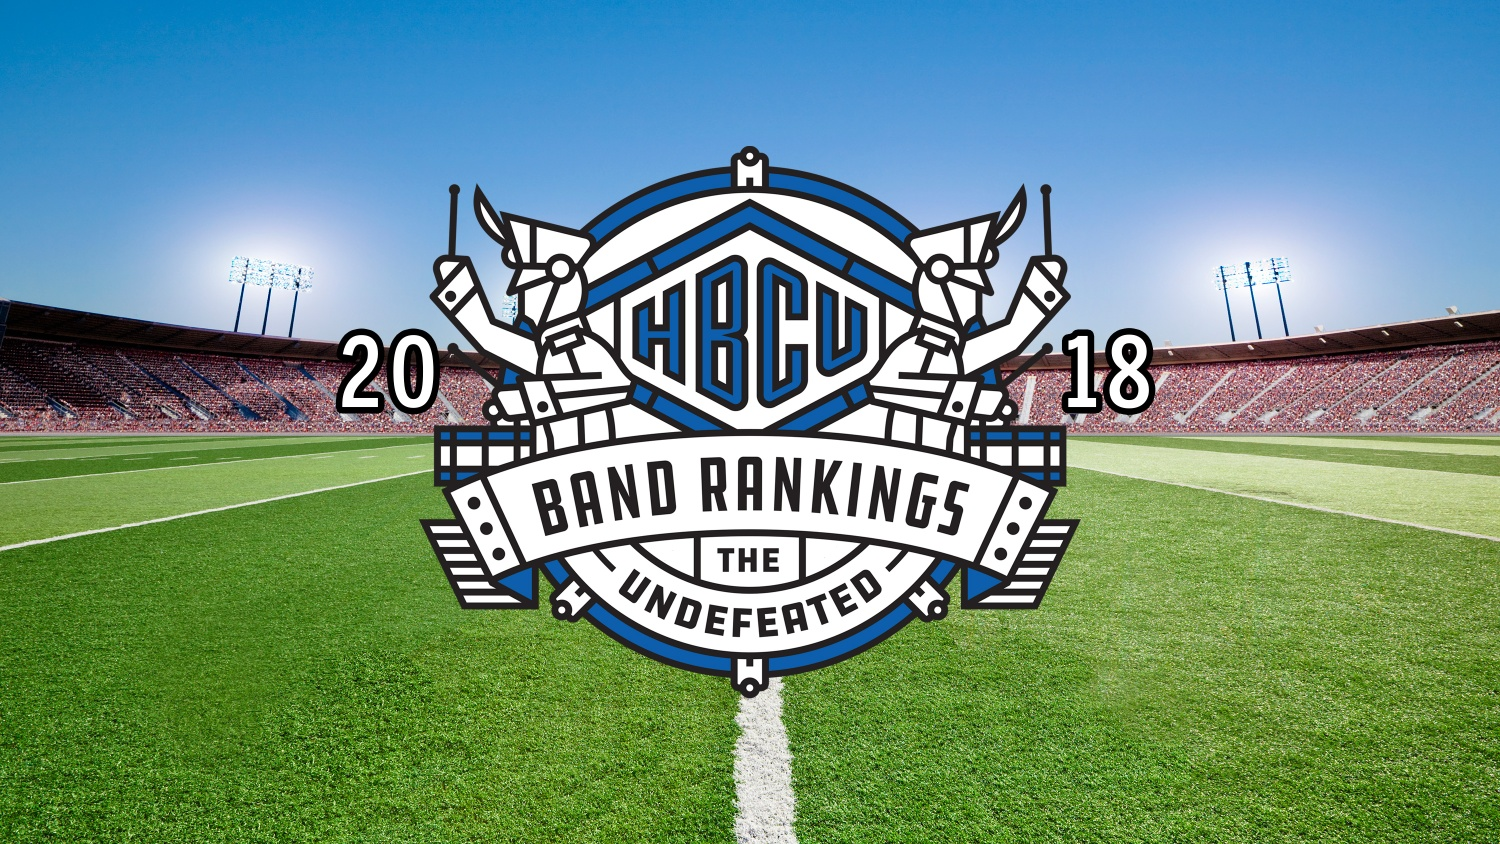 Bethune Cookman Winston Salem State Are Top Ranked Hbcu Bands The